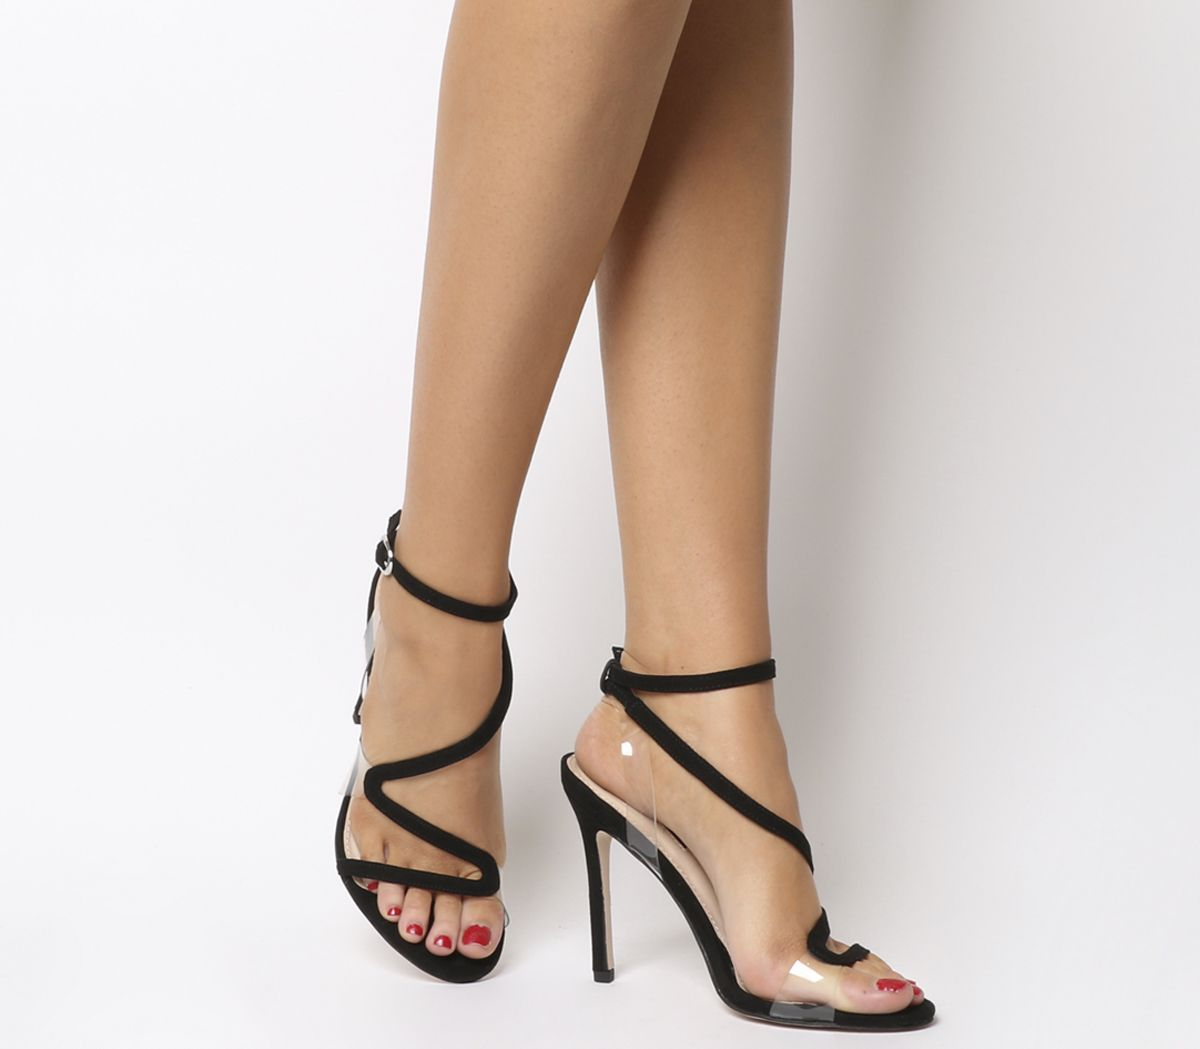 27081b16e37 Office Hotel Asymmetric Strappy Heels Black - High Heels